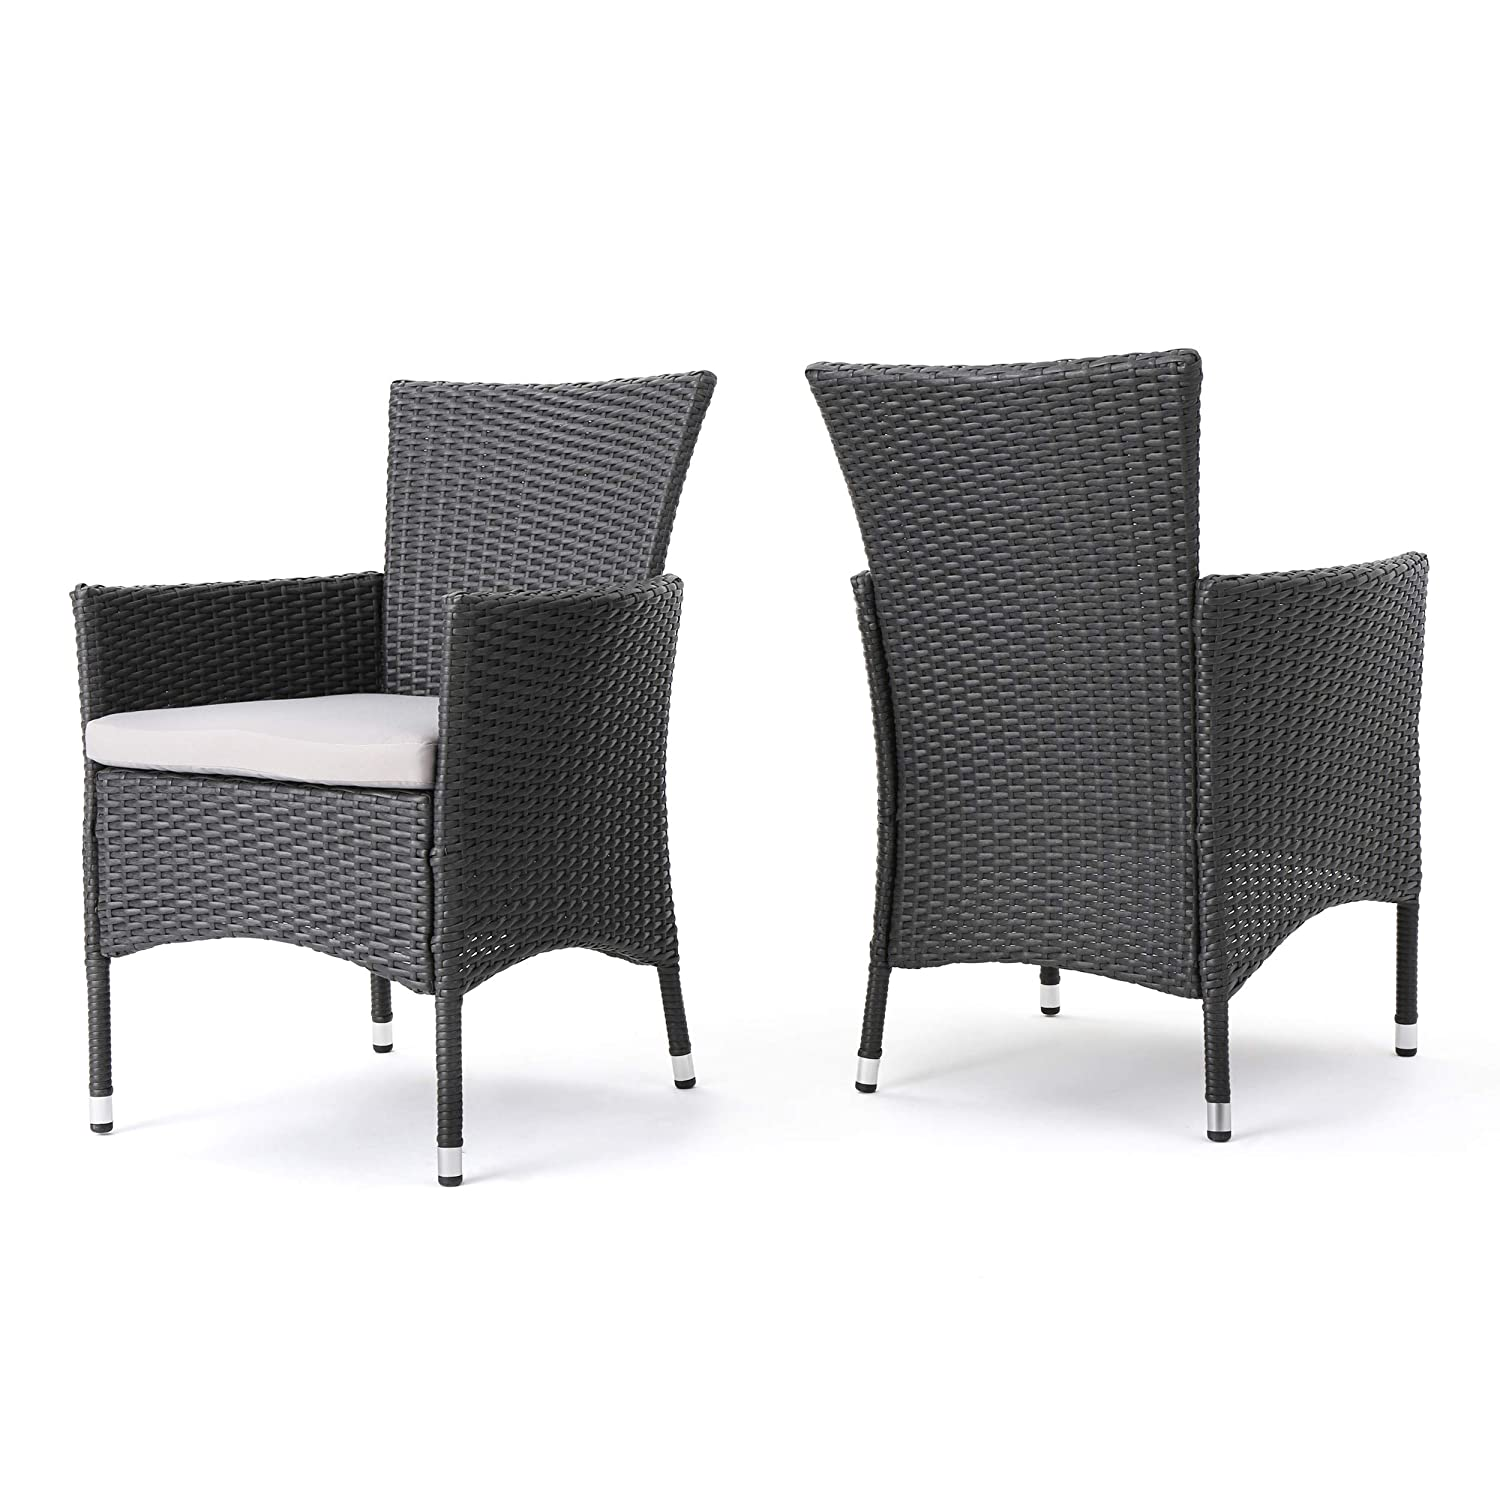 Christopher Knight Home Clementine Outdoor Wicker Dining Chairs Set of 2 , Grey